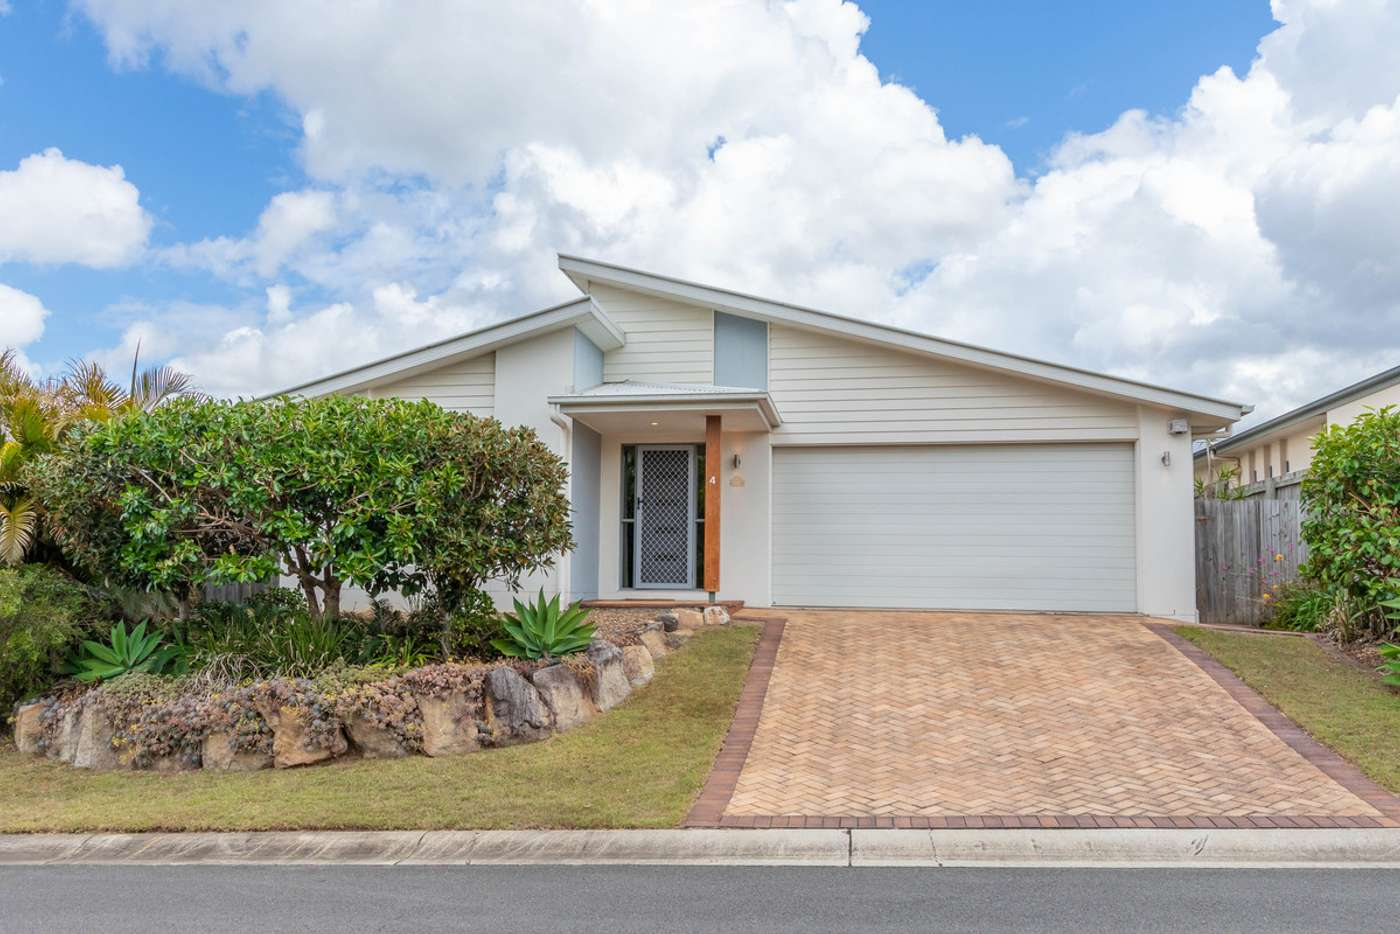 Sixth view of Homely house listing, 4/45-47 Shailer Road, Shailer Park QLD 4128